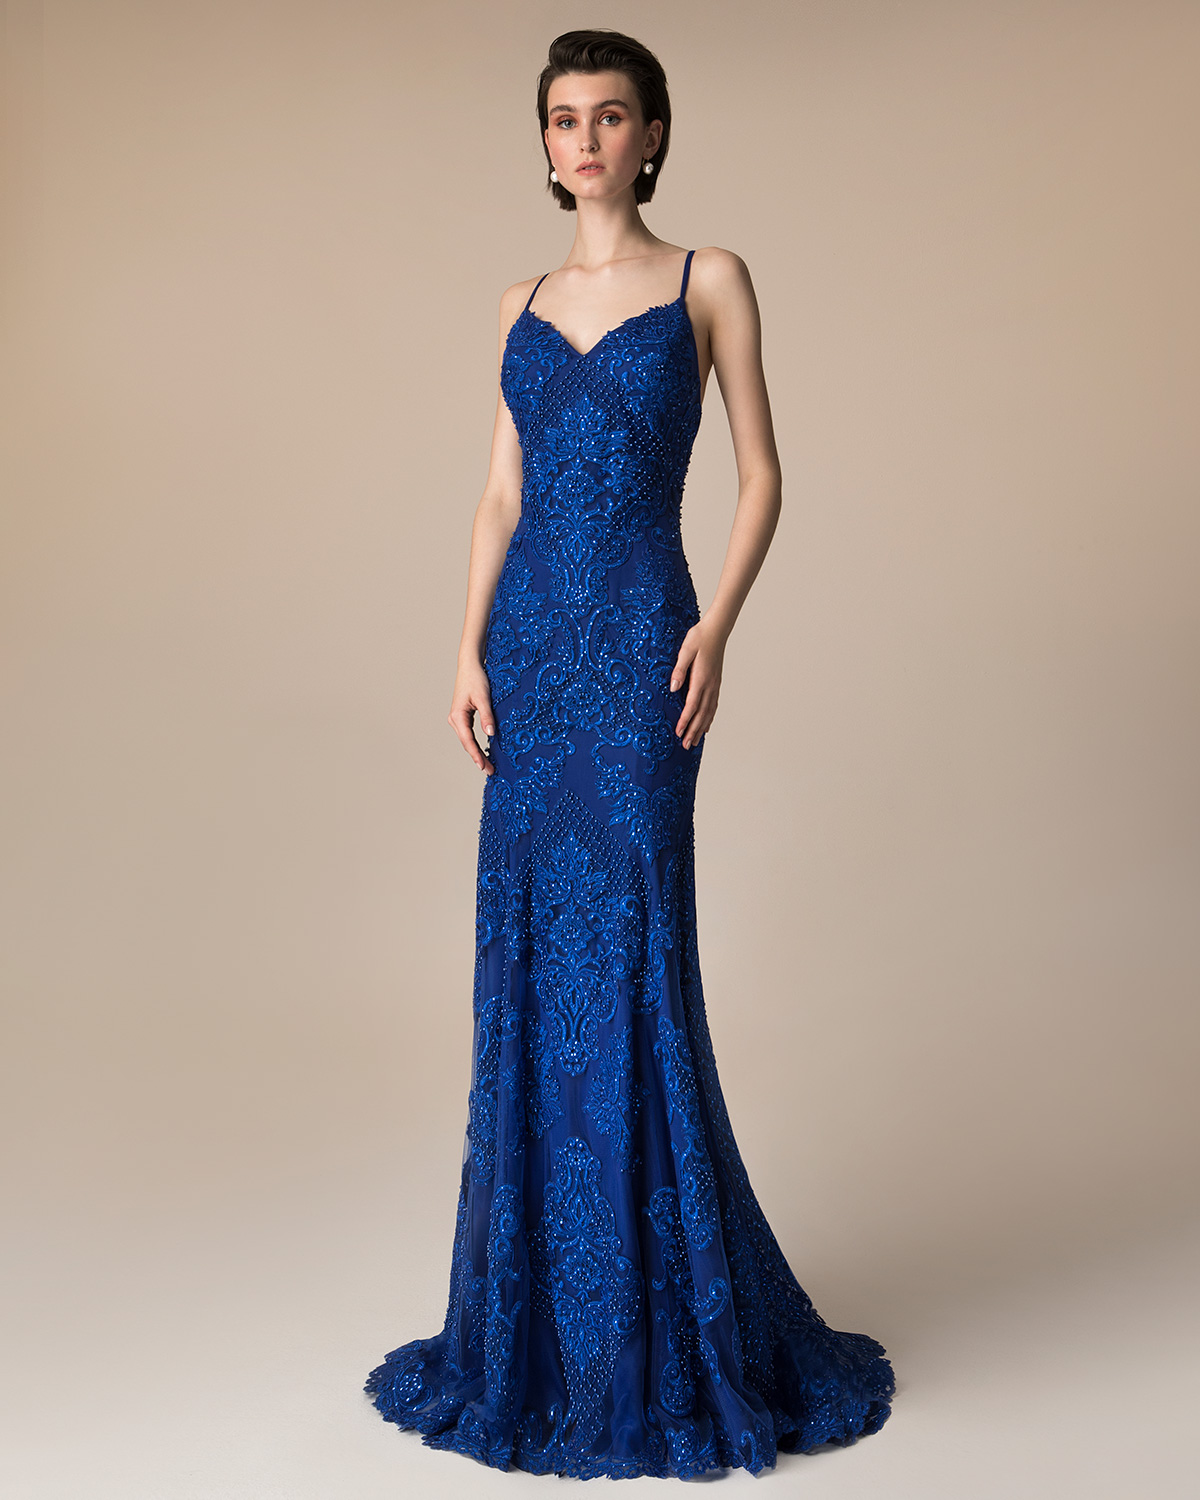 Evening Dresses / Long evening dress with beading and applique lace